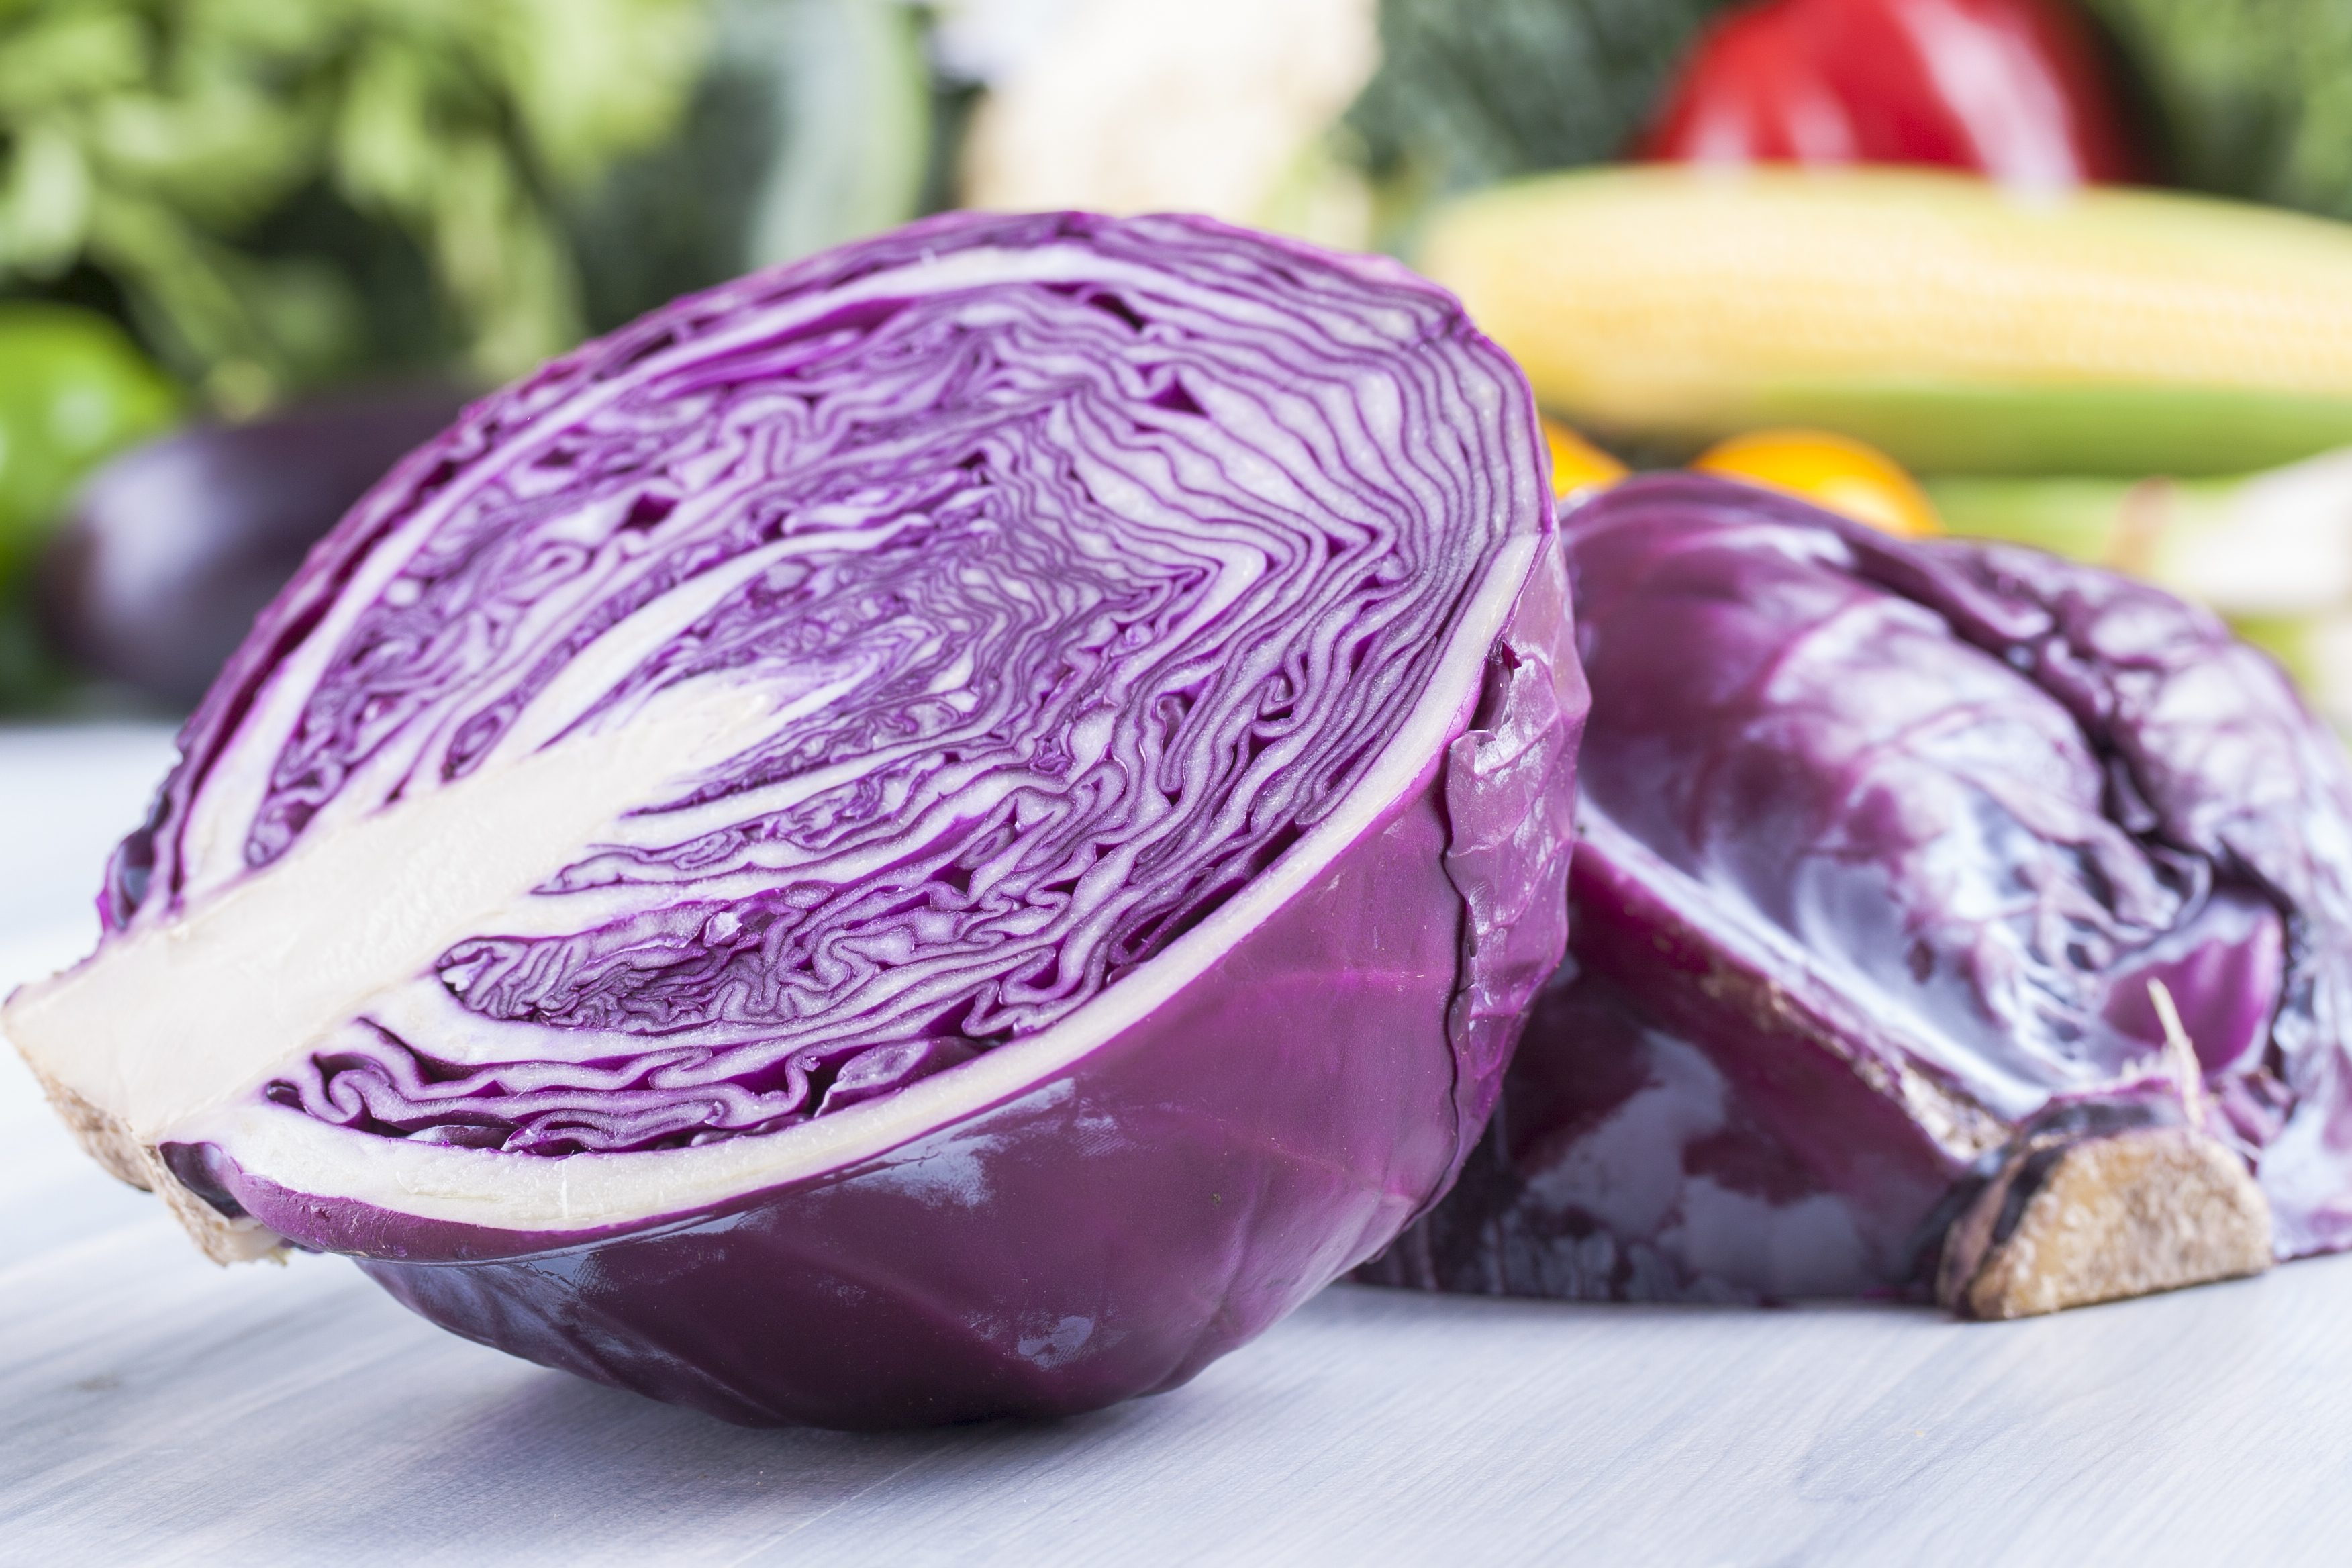 How to Select and Store Cabbage